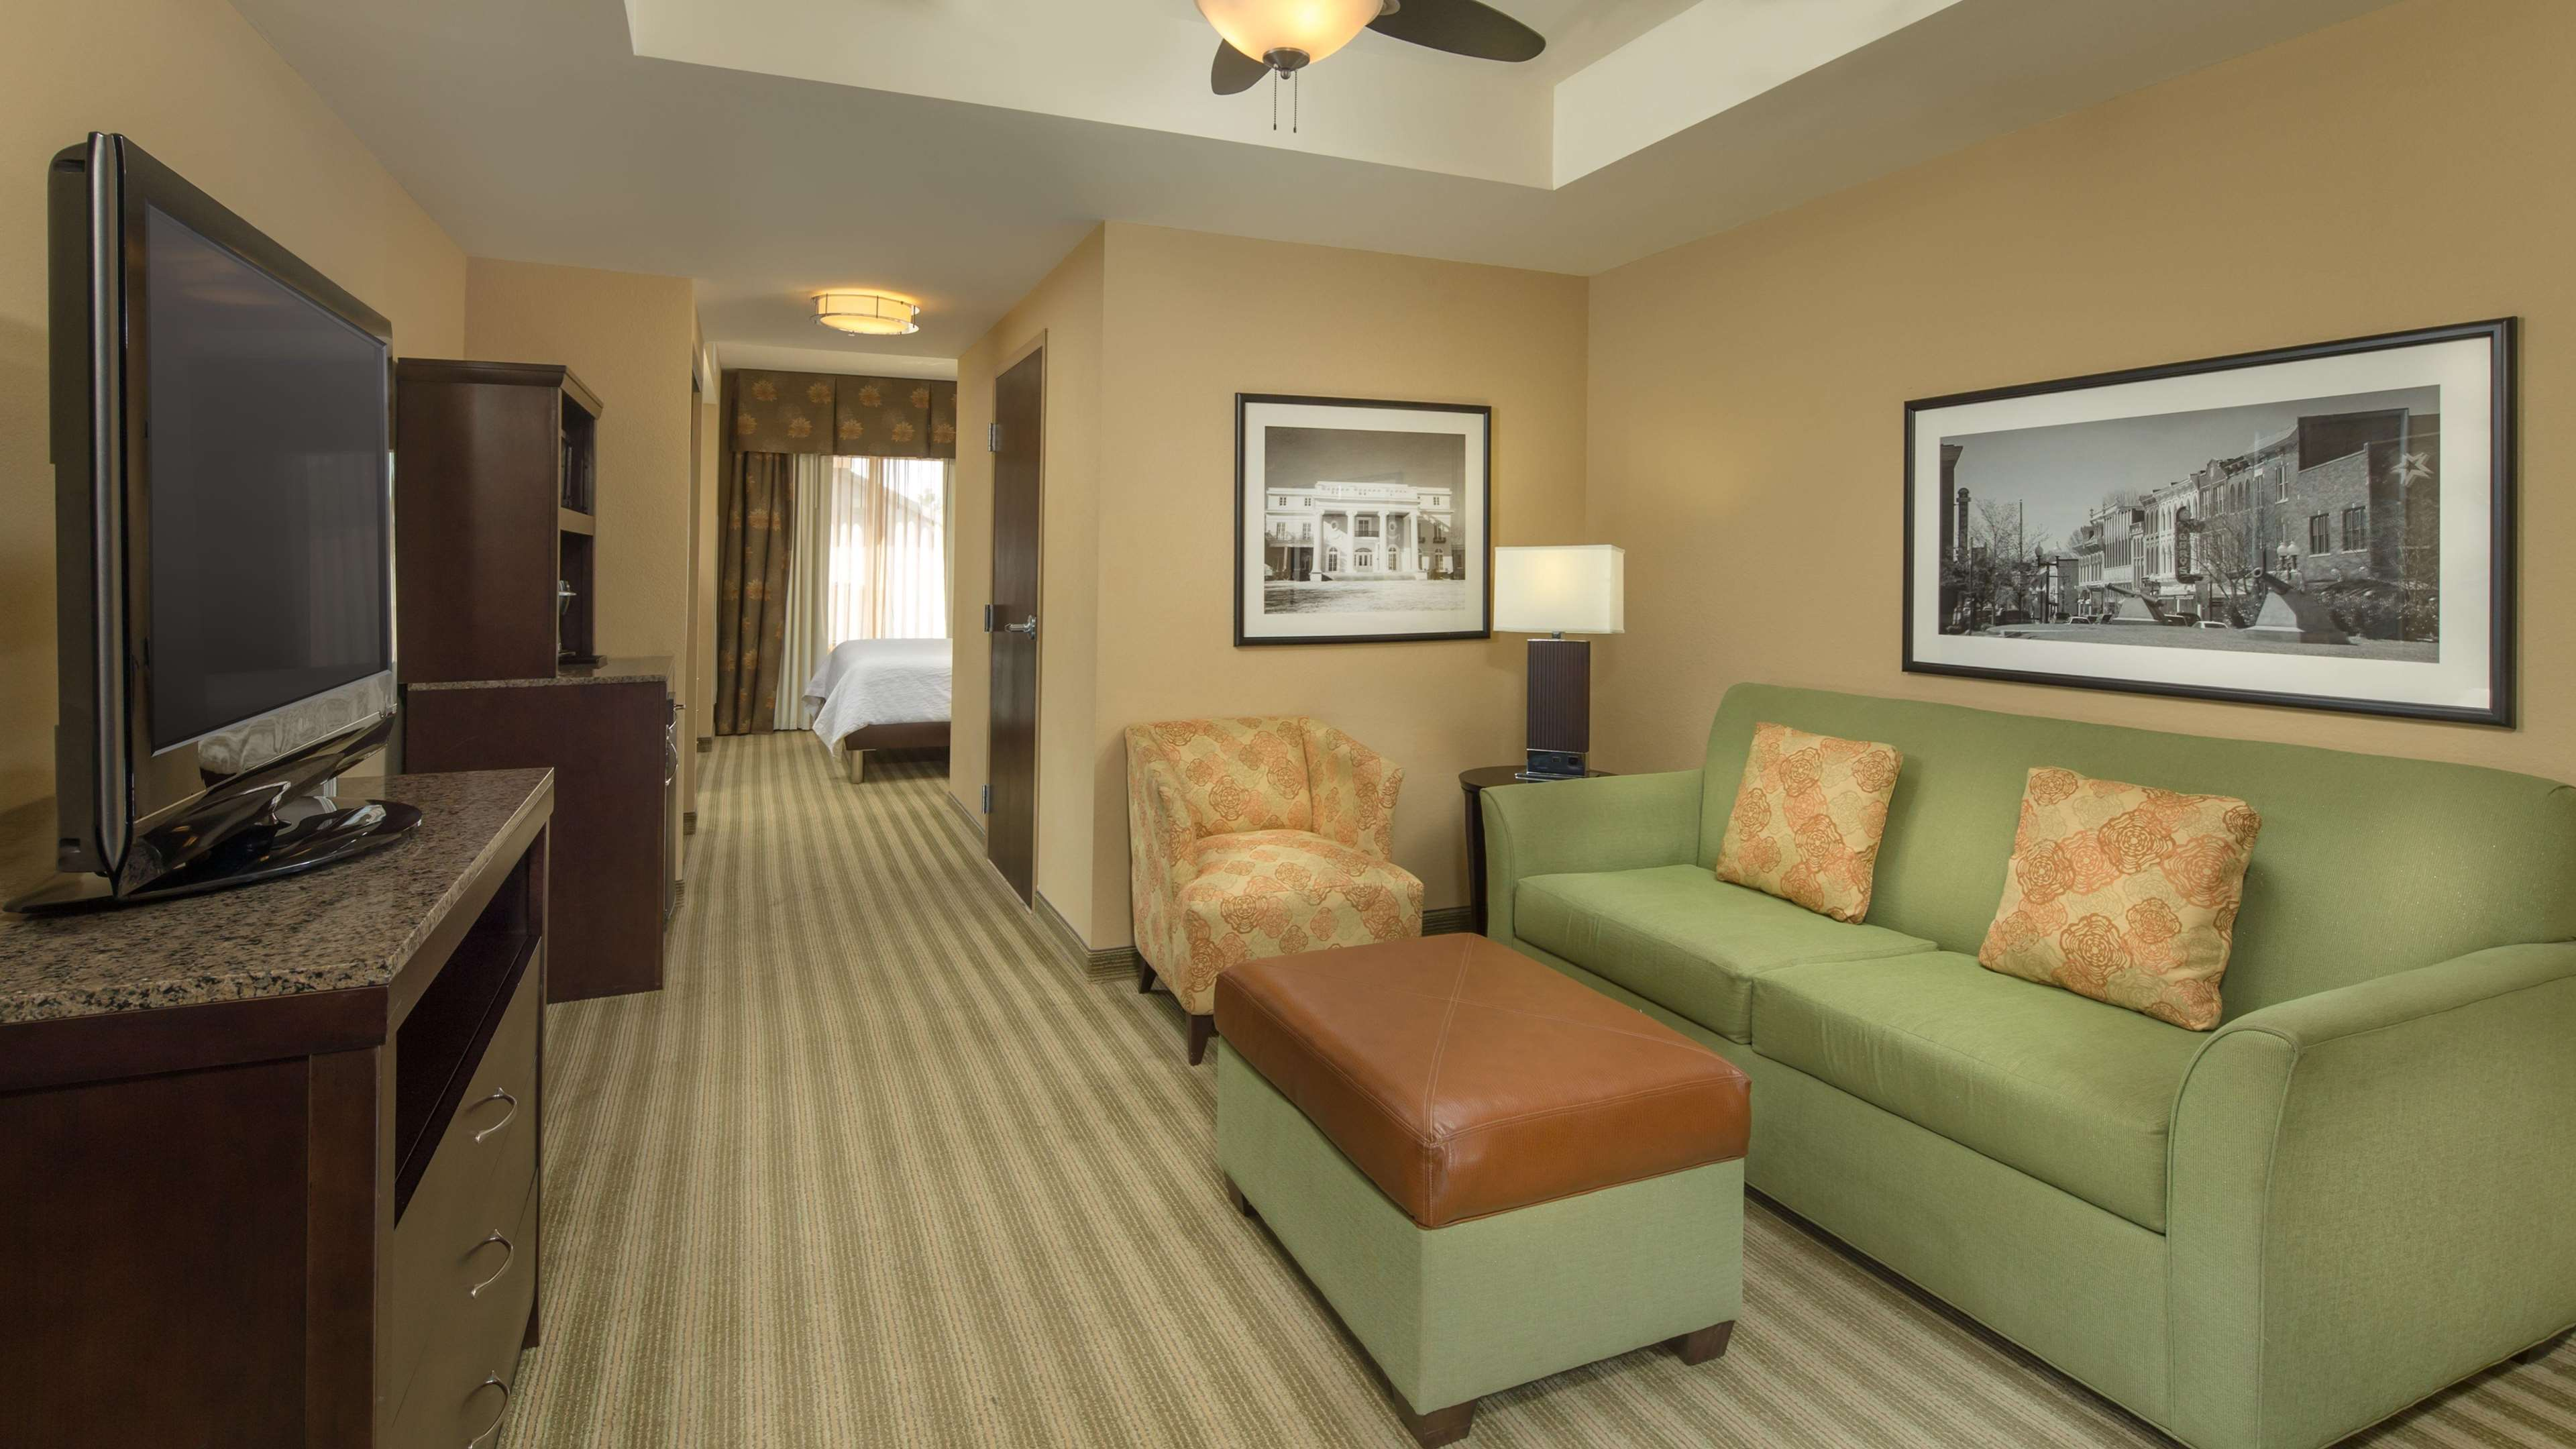 Old Fashioned Hilton Garden Inn Brentwood Tn Ensign - Brown Nature ...